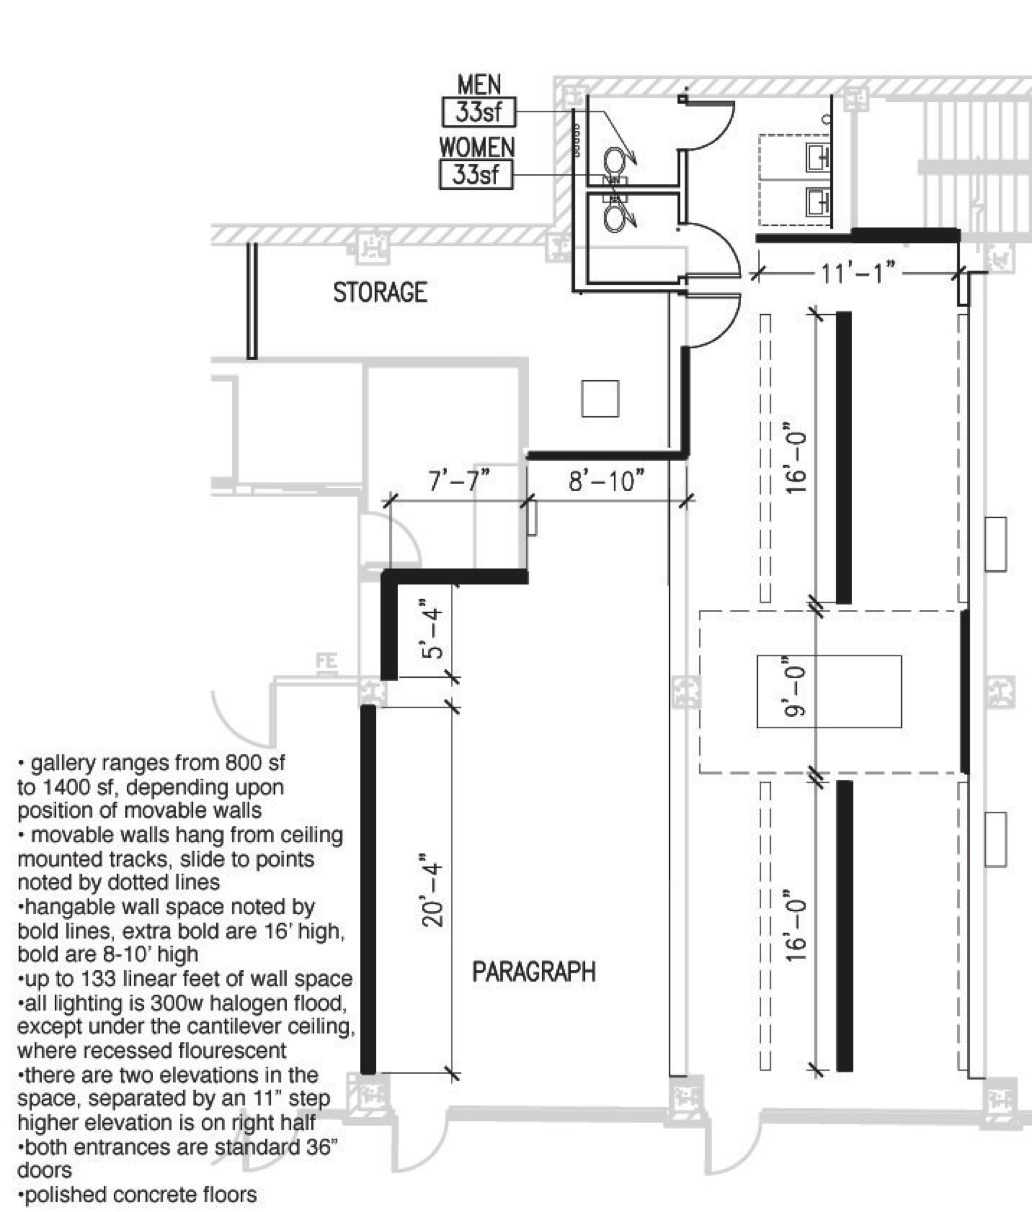 Mr And Mrs Smith House Floor Plan | Home Design